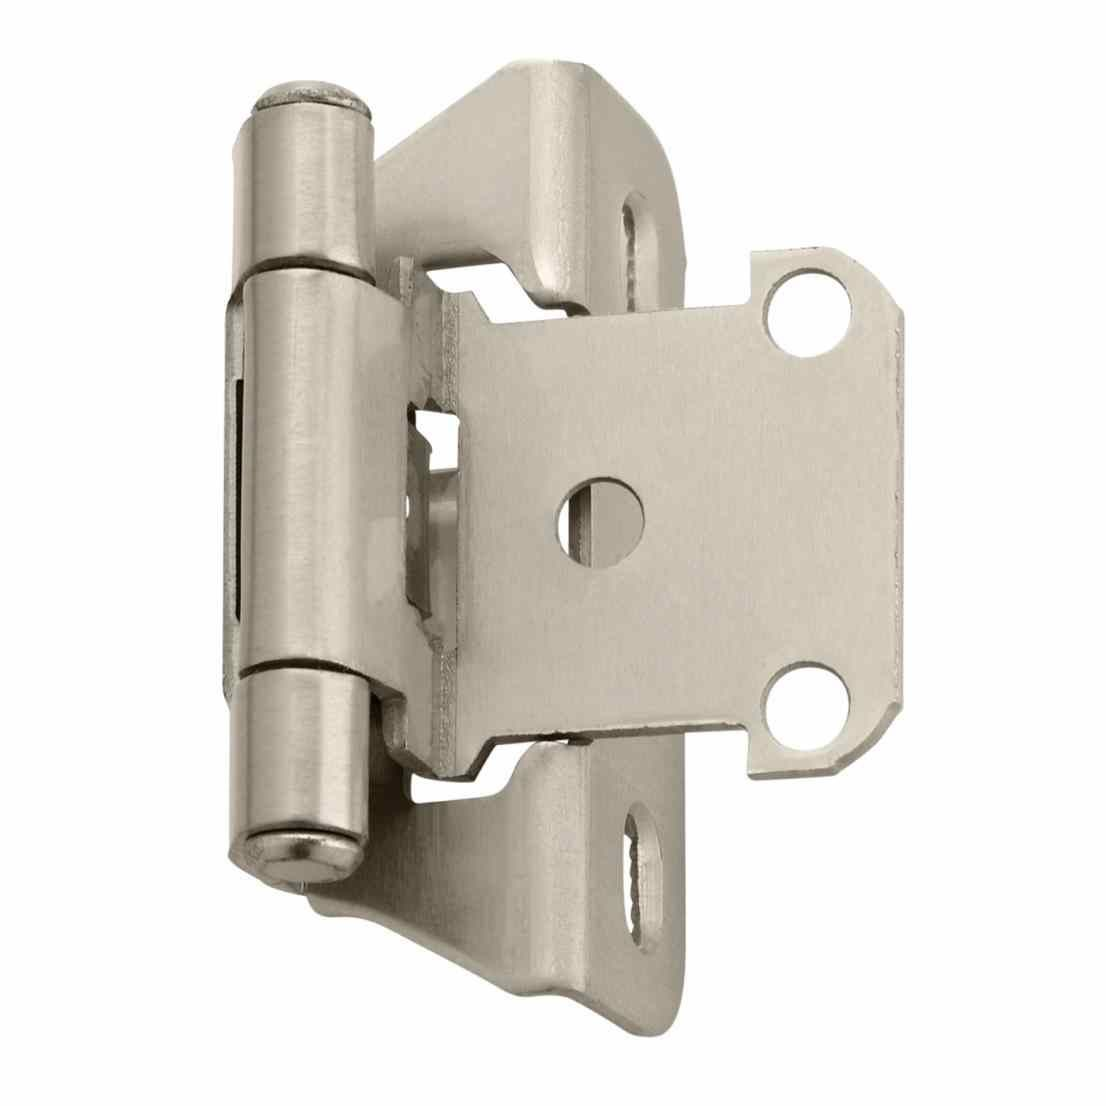 Hidden Cabinet Creative Cabinets Decoration Semi Hidden Cabinet Door Hinges Hidden Cabinet Hinges Cr Hinges For Cabinets Kitchen Cabinets Hinges Overlay Hinges